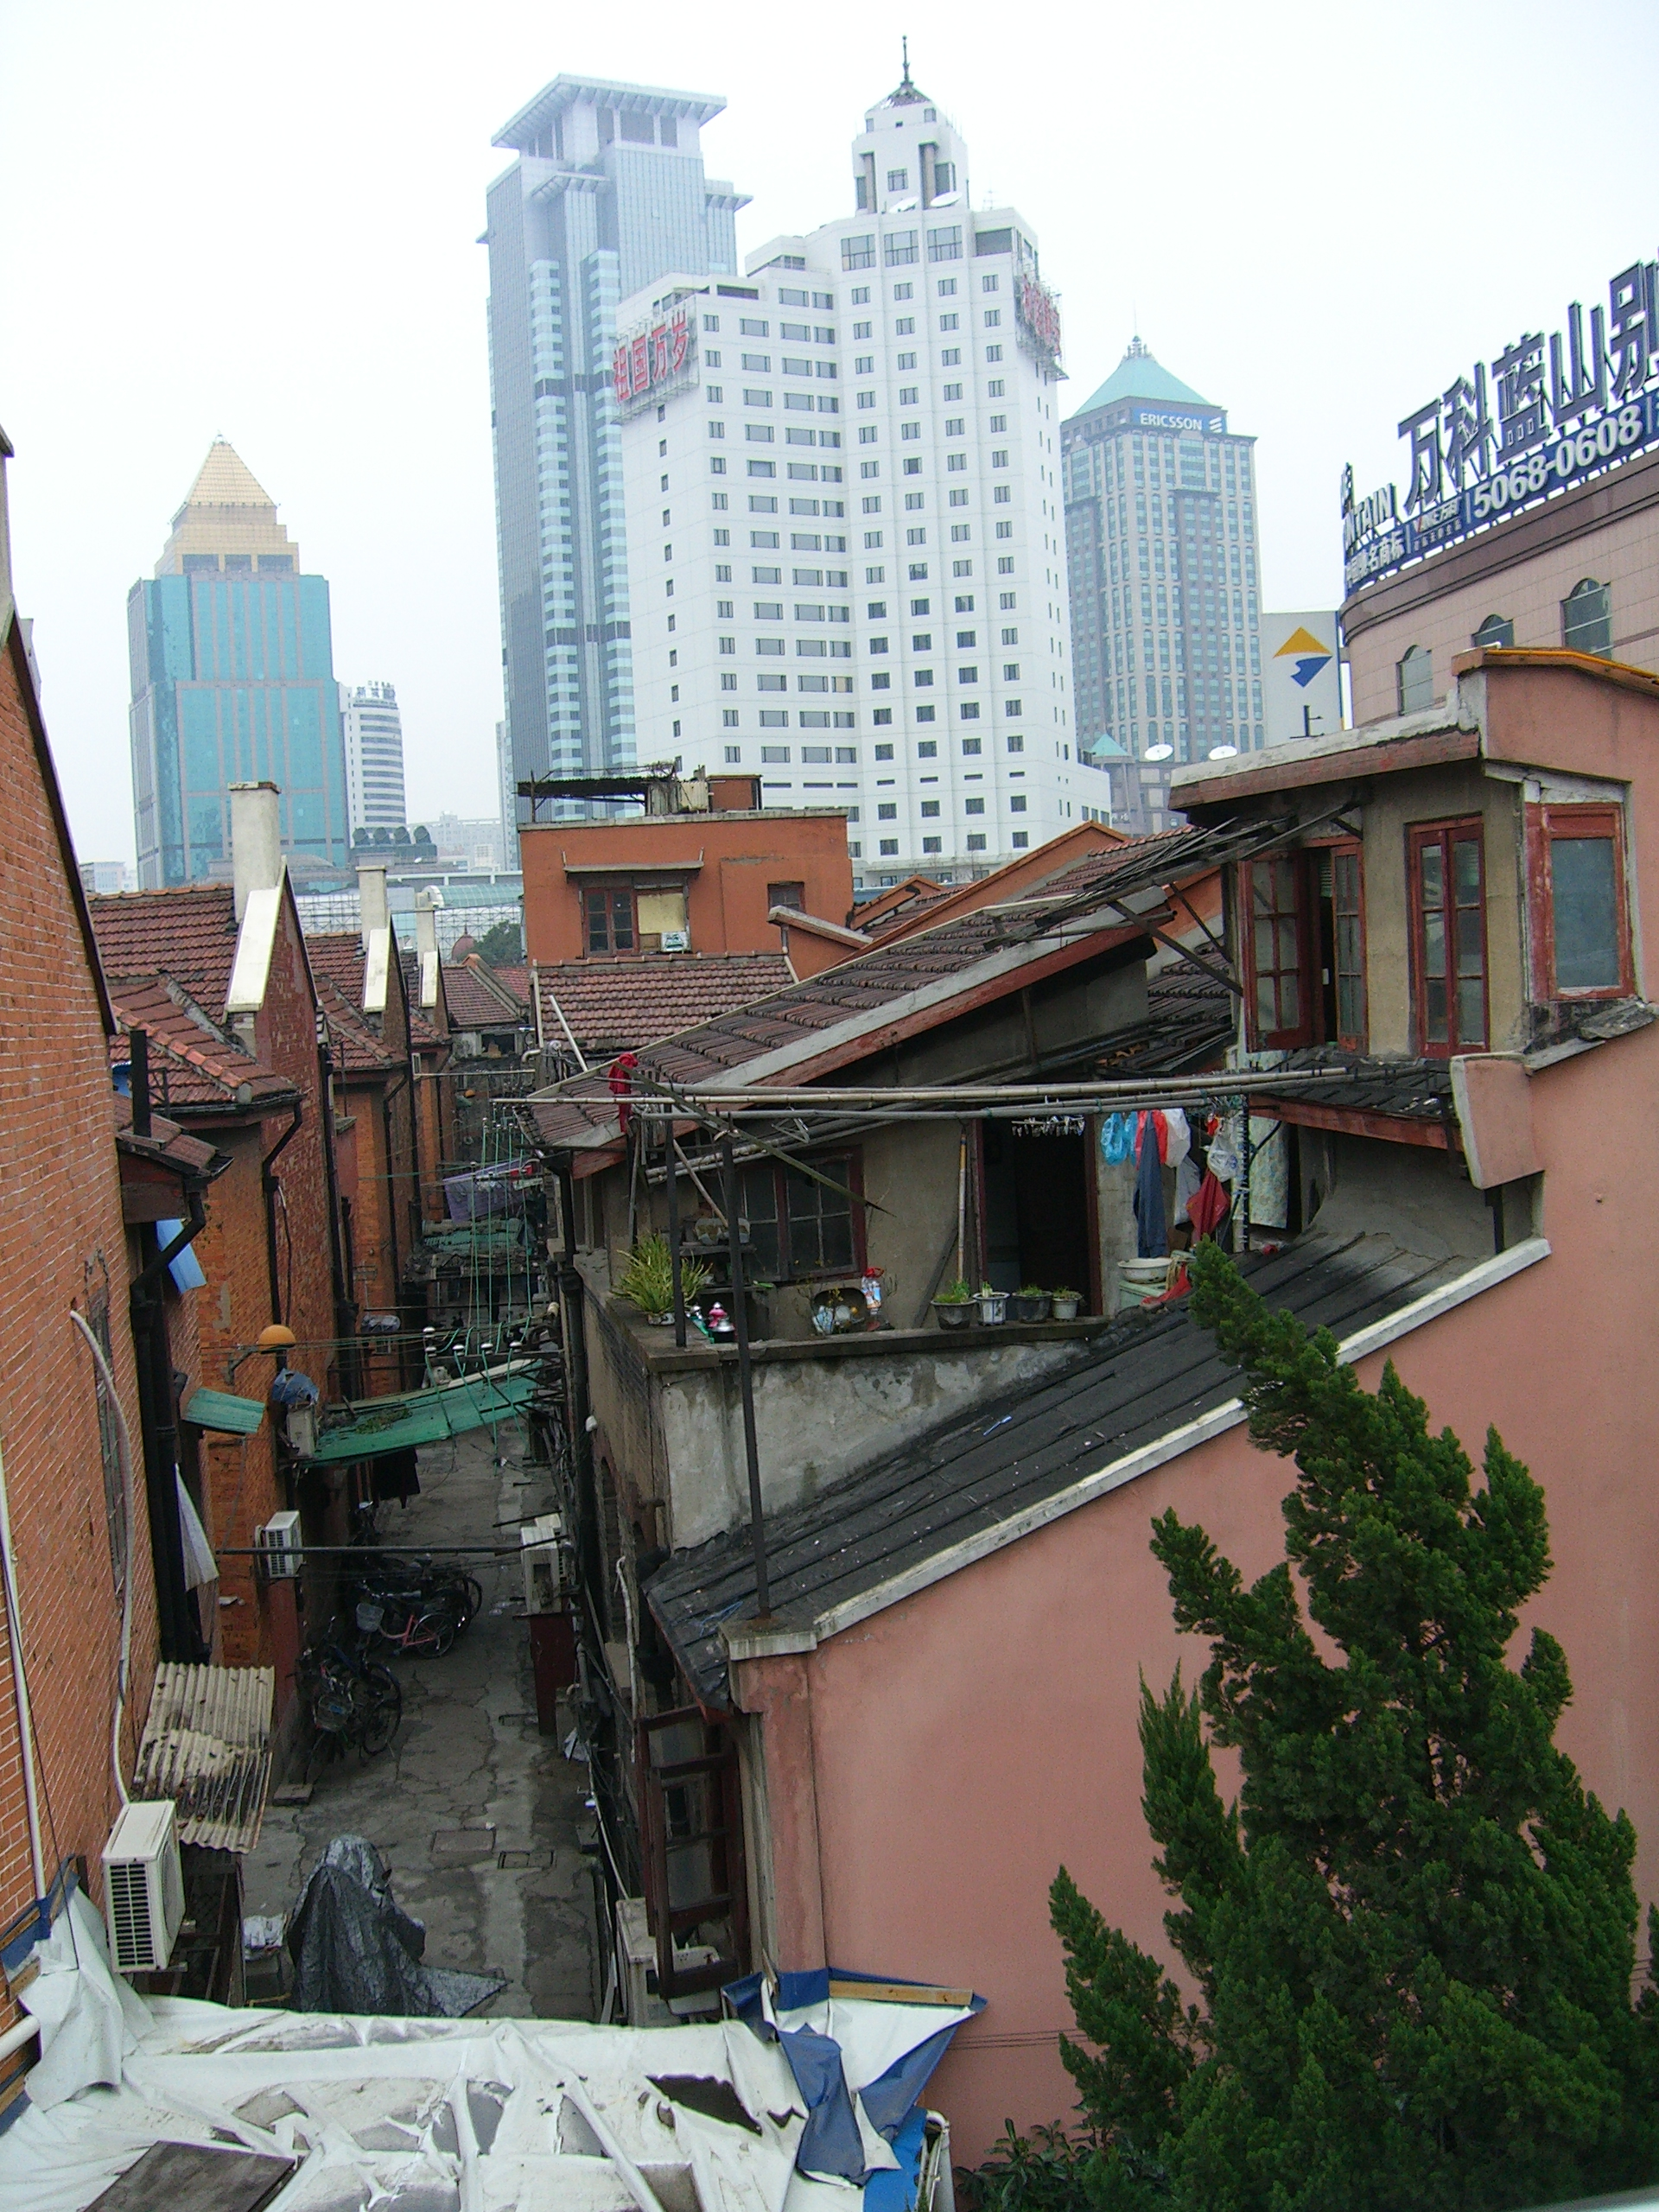 File:Shanghai old and new architecture.jpg - Wikimedia Commons